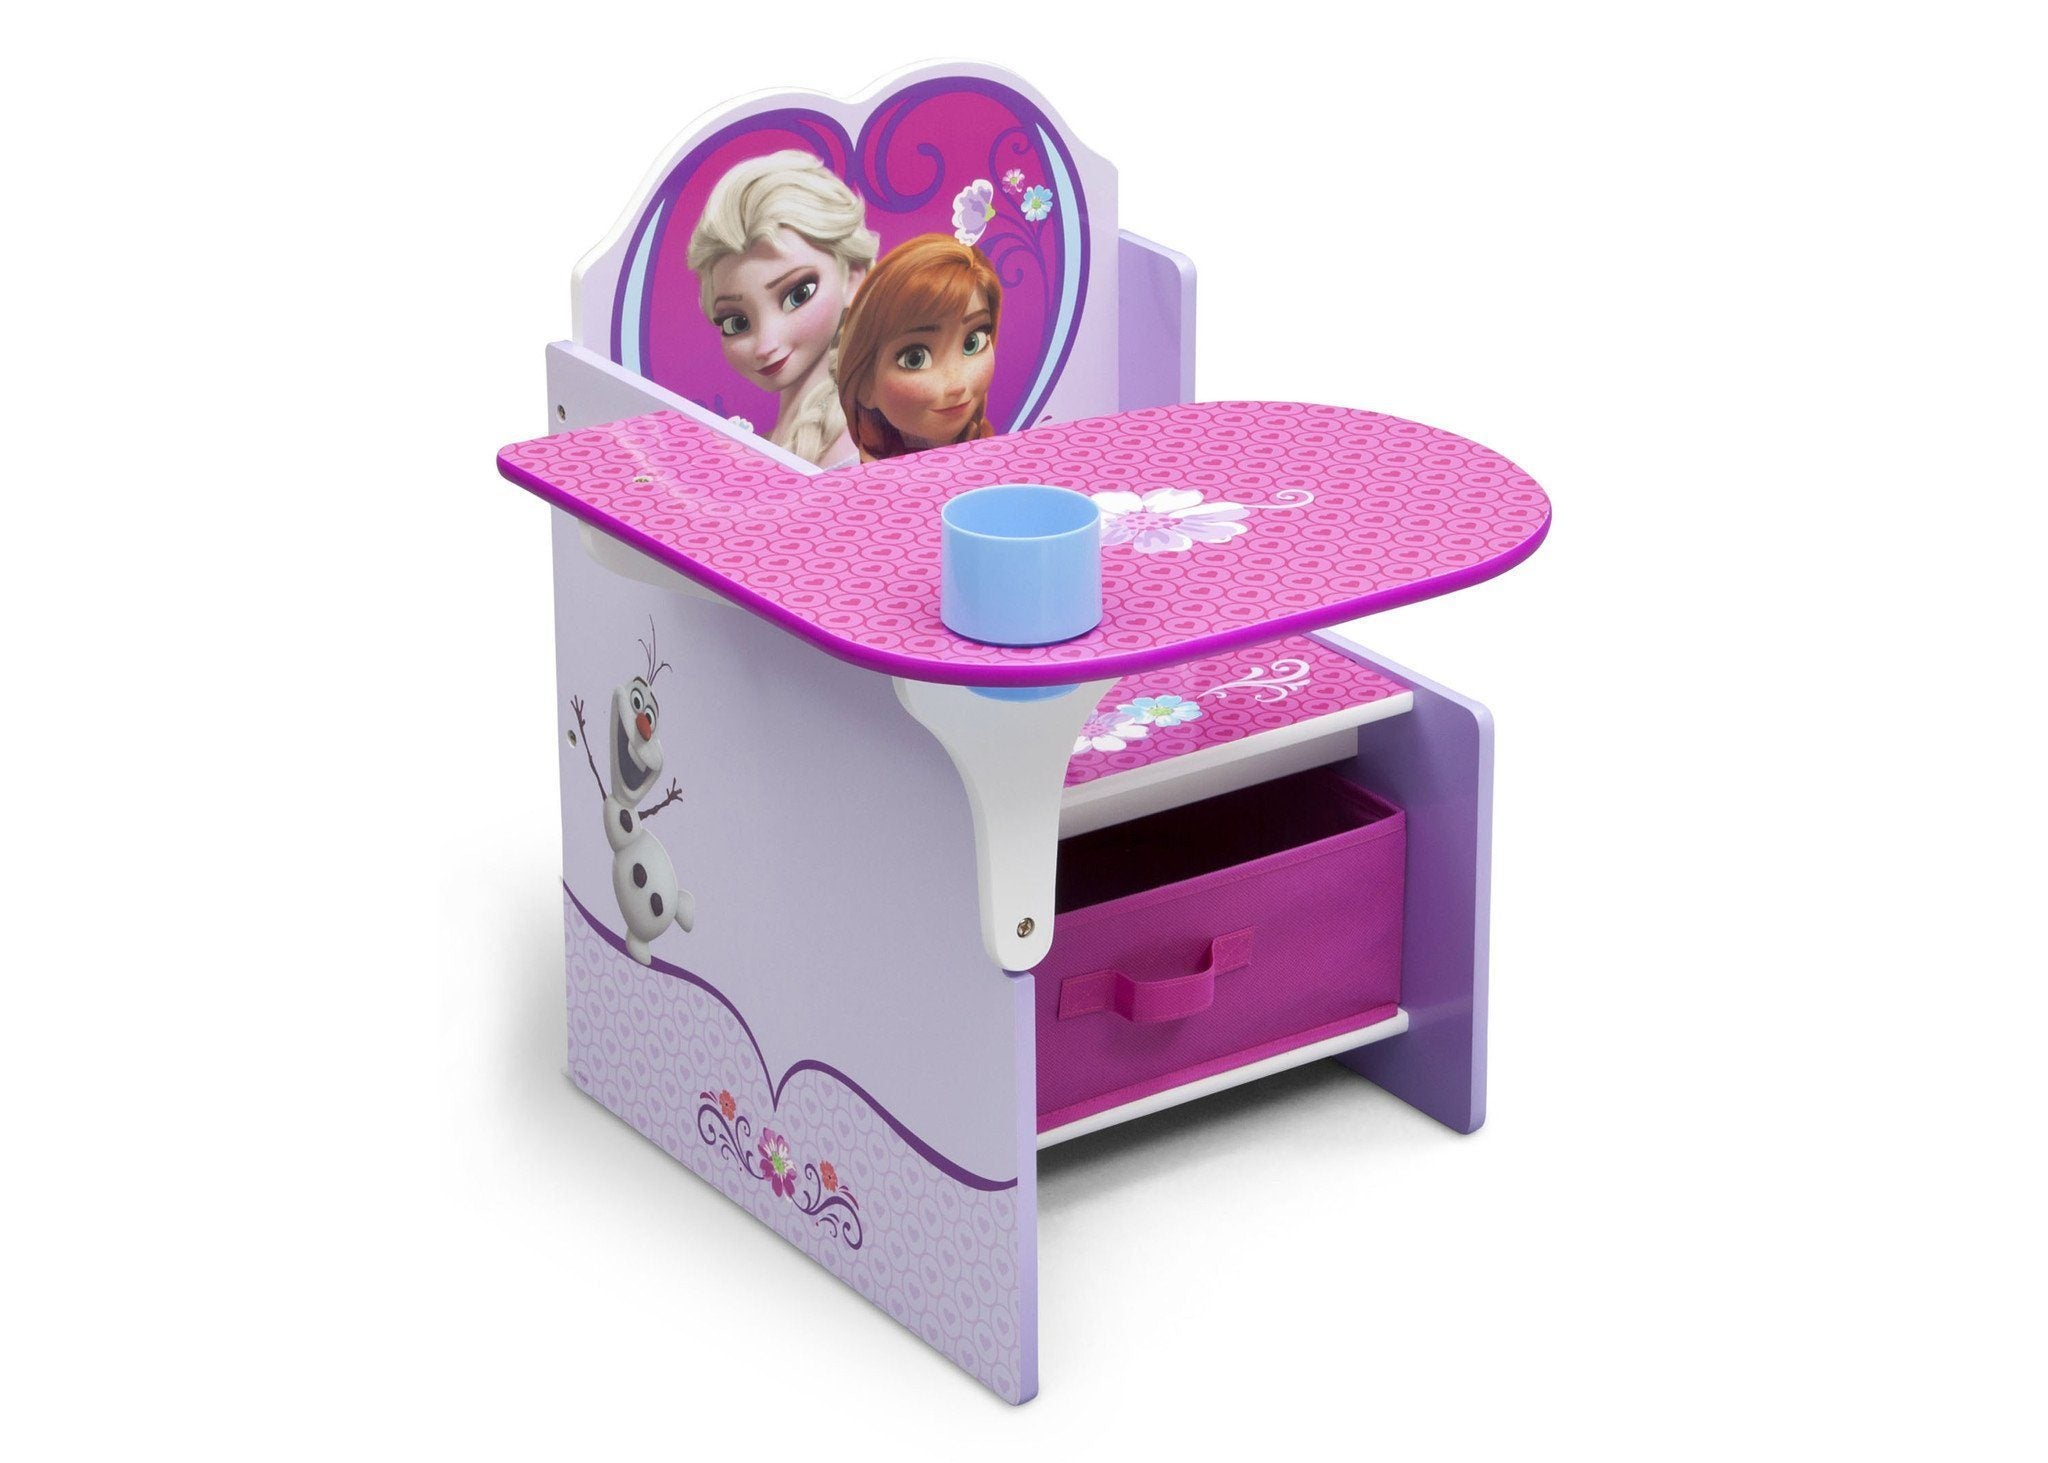 Delta Children Frozen Chair Desk with Storage Bin, Right View a1a Frozen (1089)